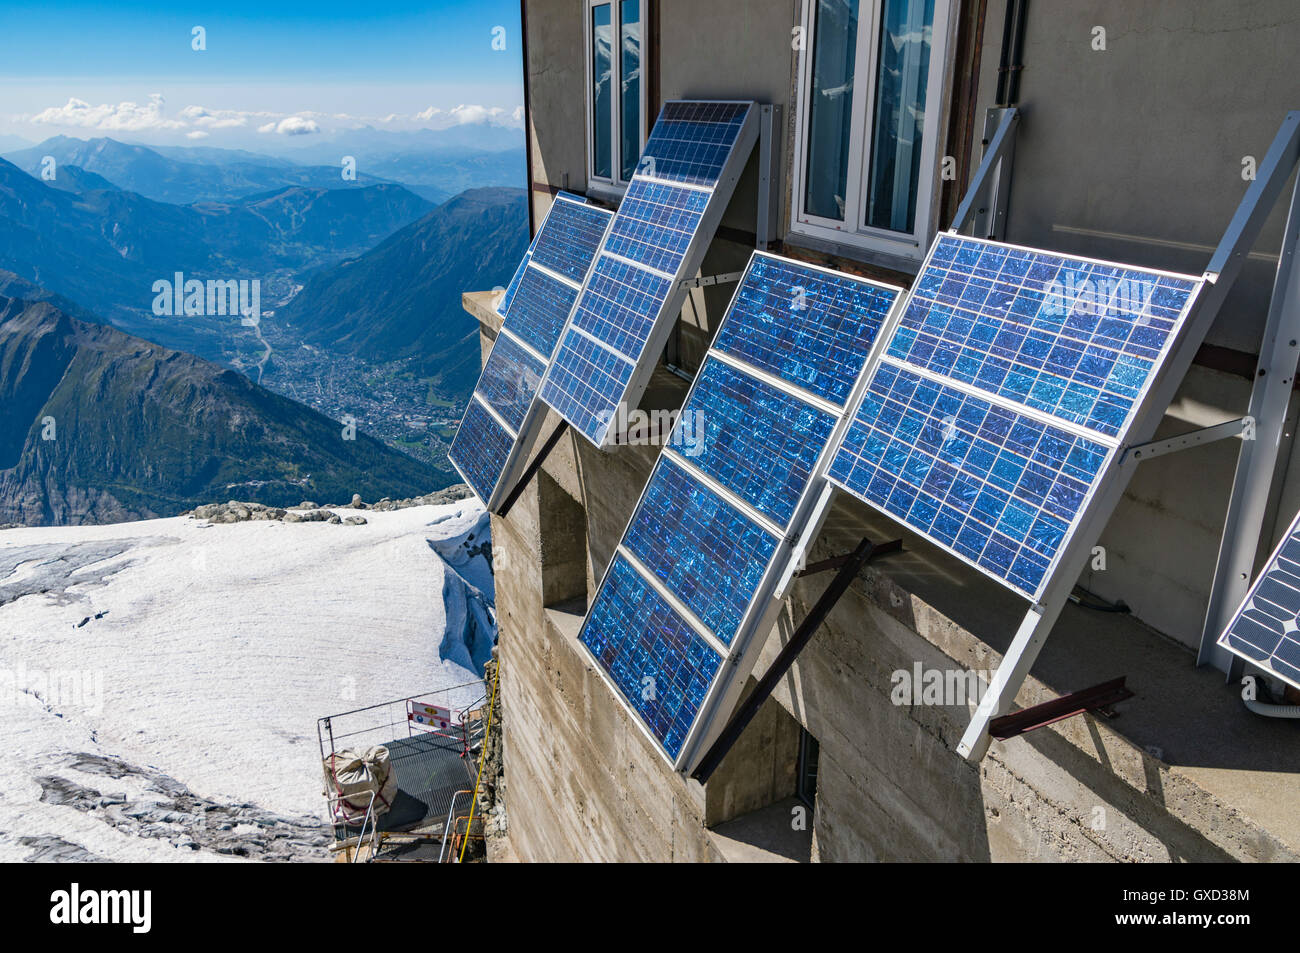 Solar panels on side of building, French Alps - Stock Image